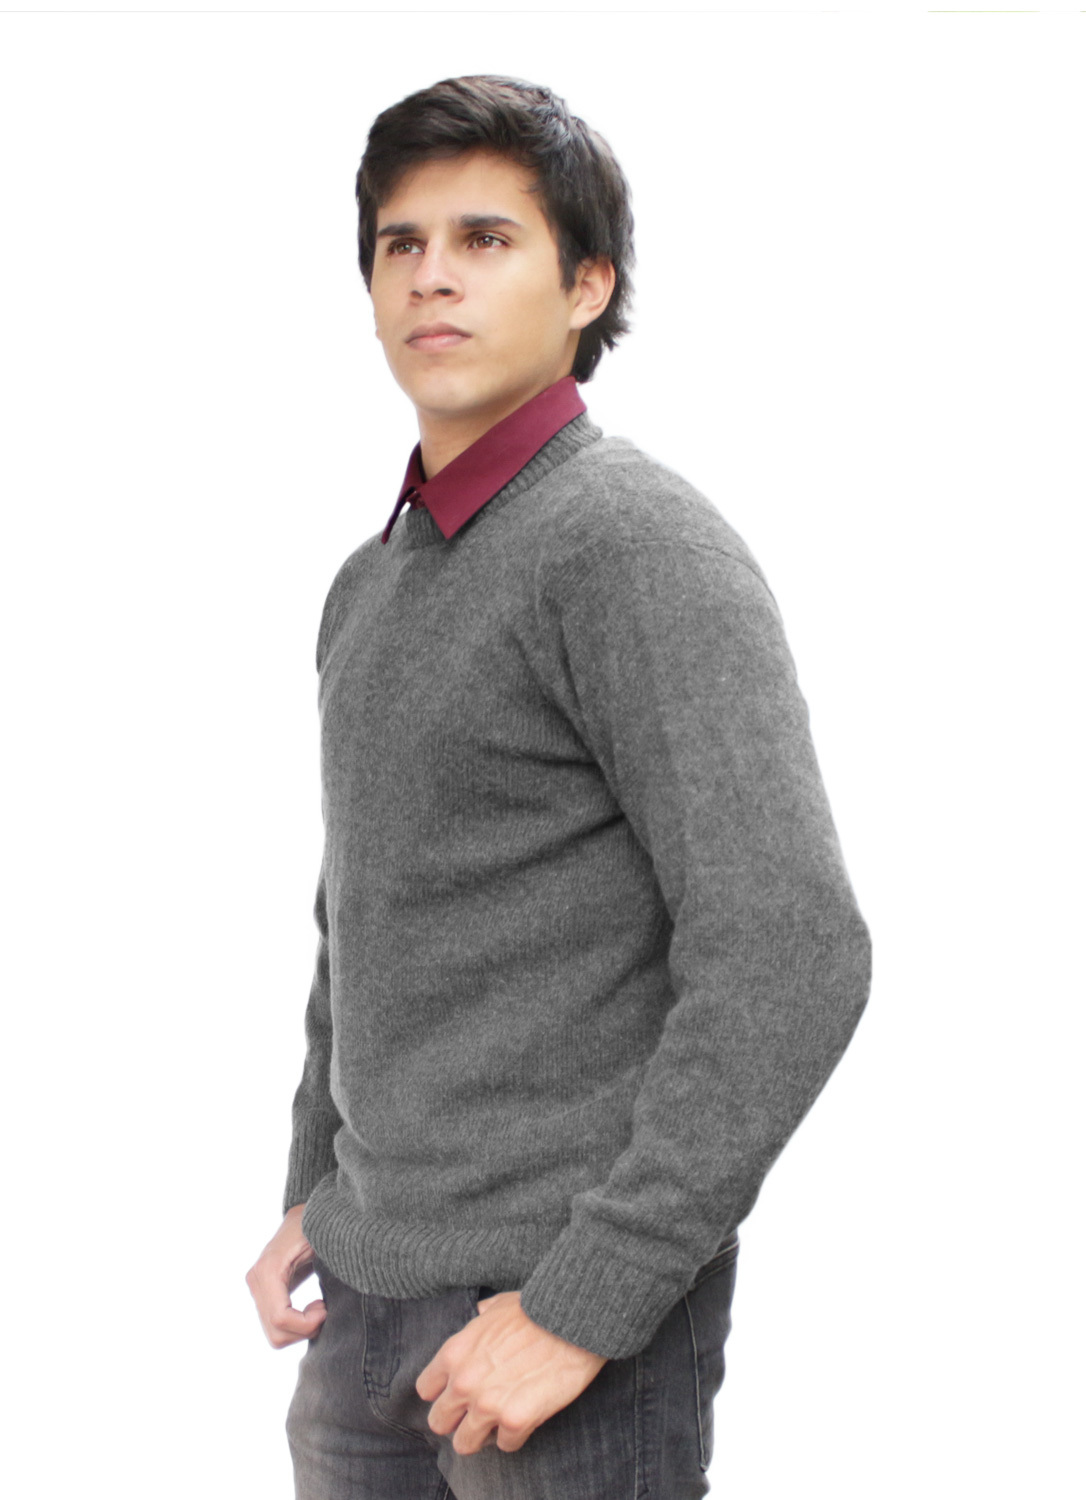 Find great deals on eBay for Mens Warm Sweater in Sweaters and Clothing for Men. Shop with confidence.